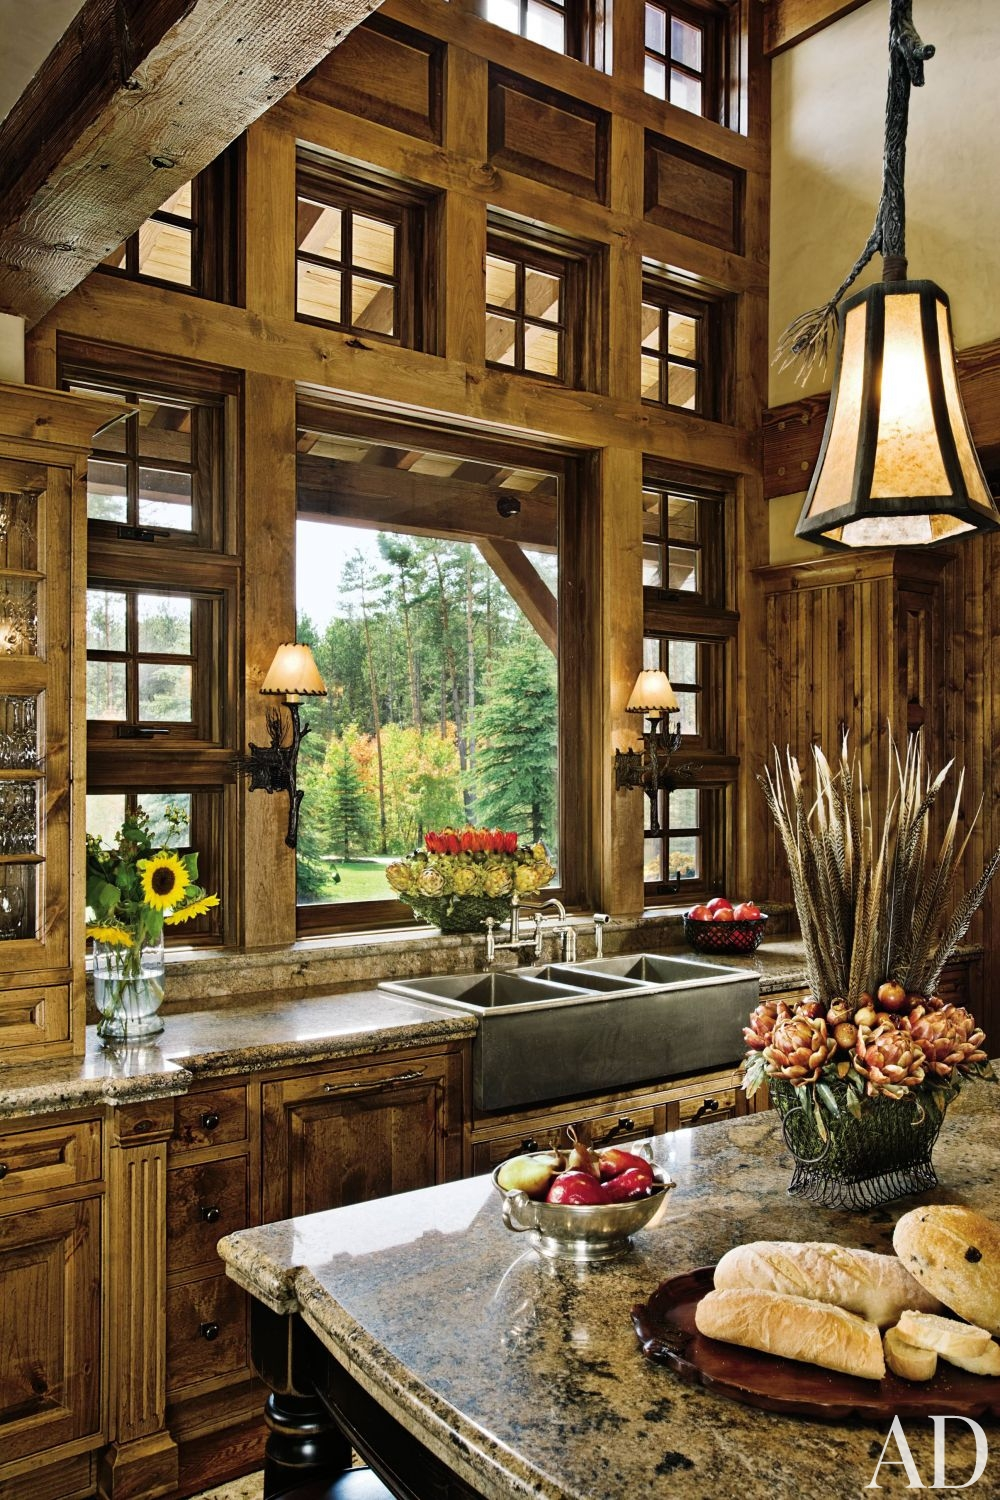 Nature Inspired - Bring in the Outdoors with these Simple ... on Rustic Traditional Decor  id=97630